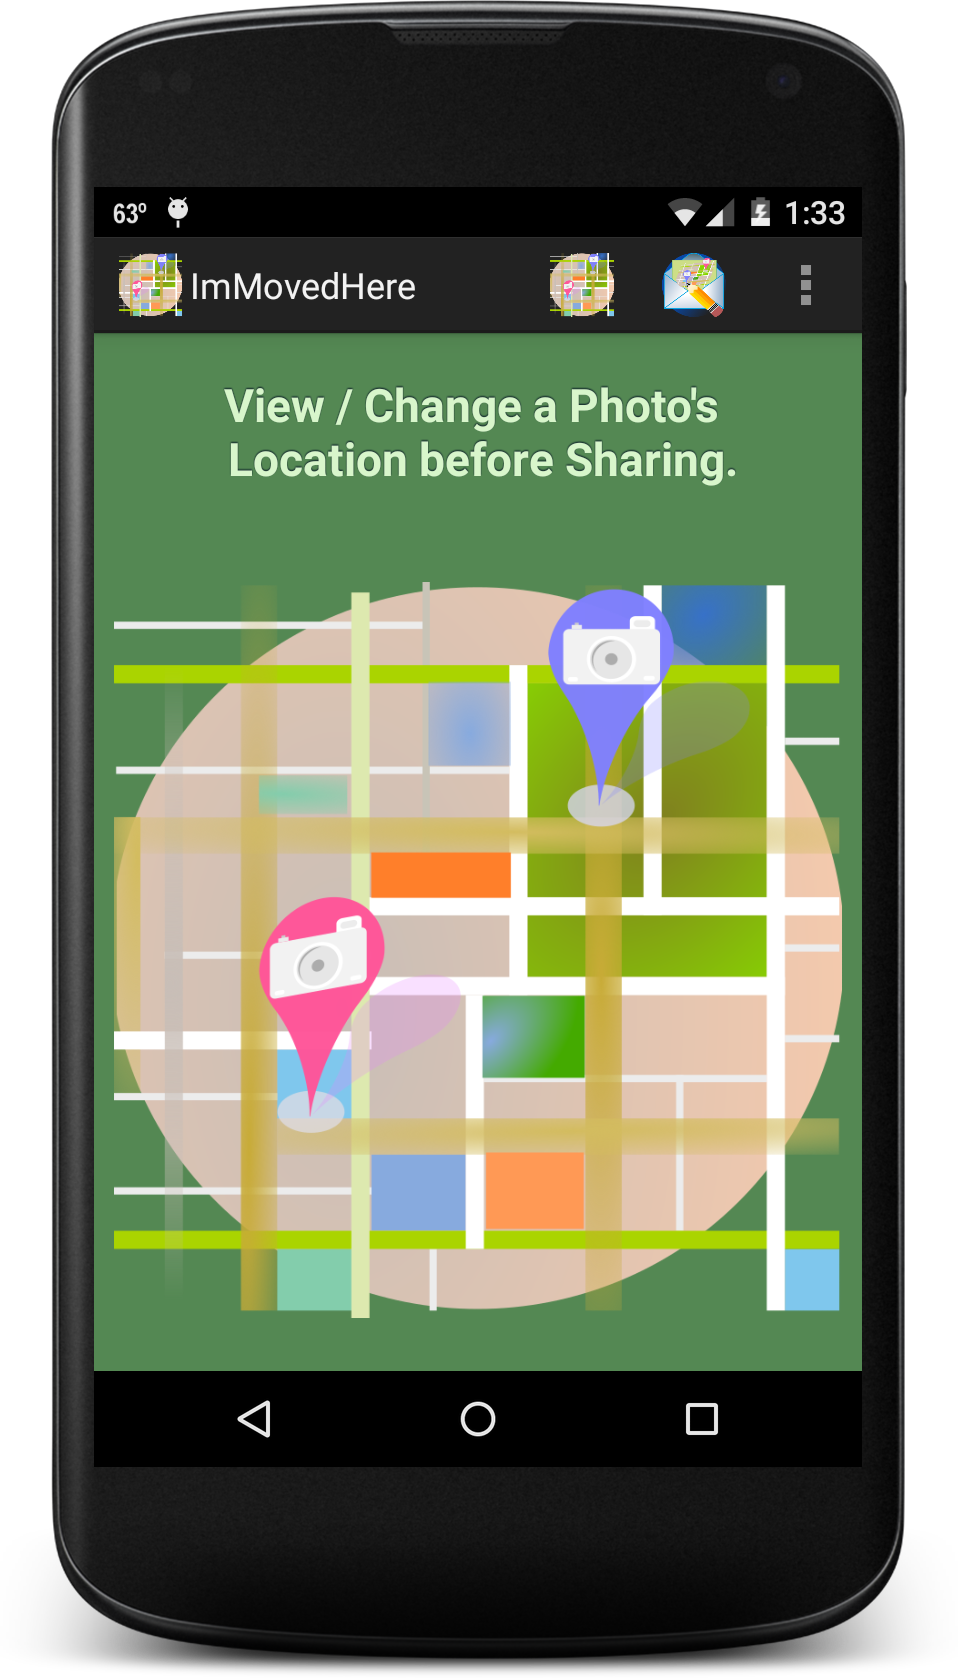 device-2015-07-08-133337.png